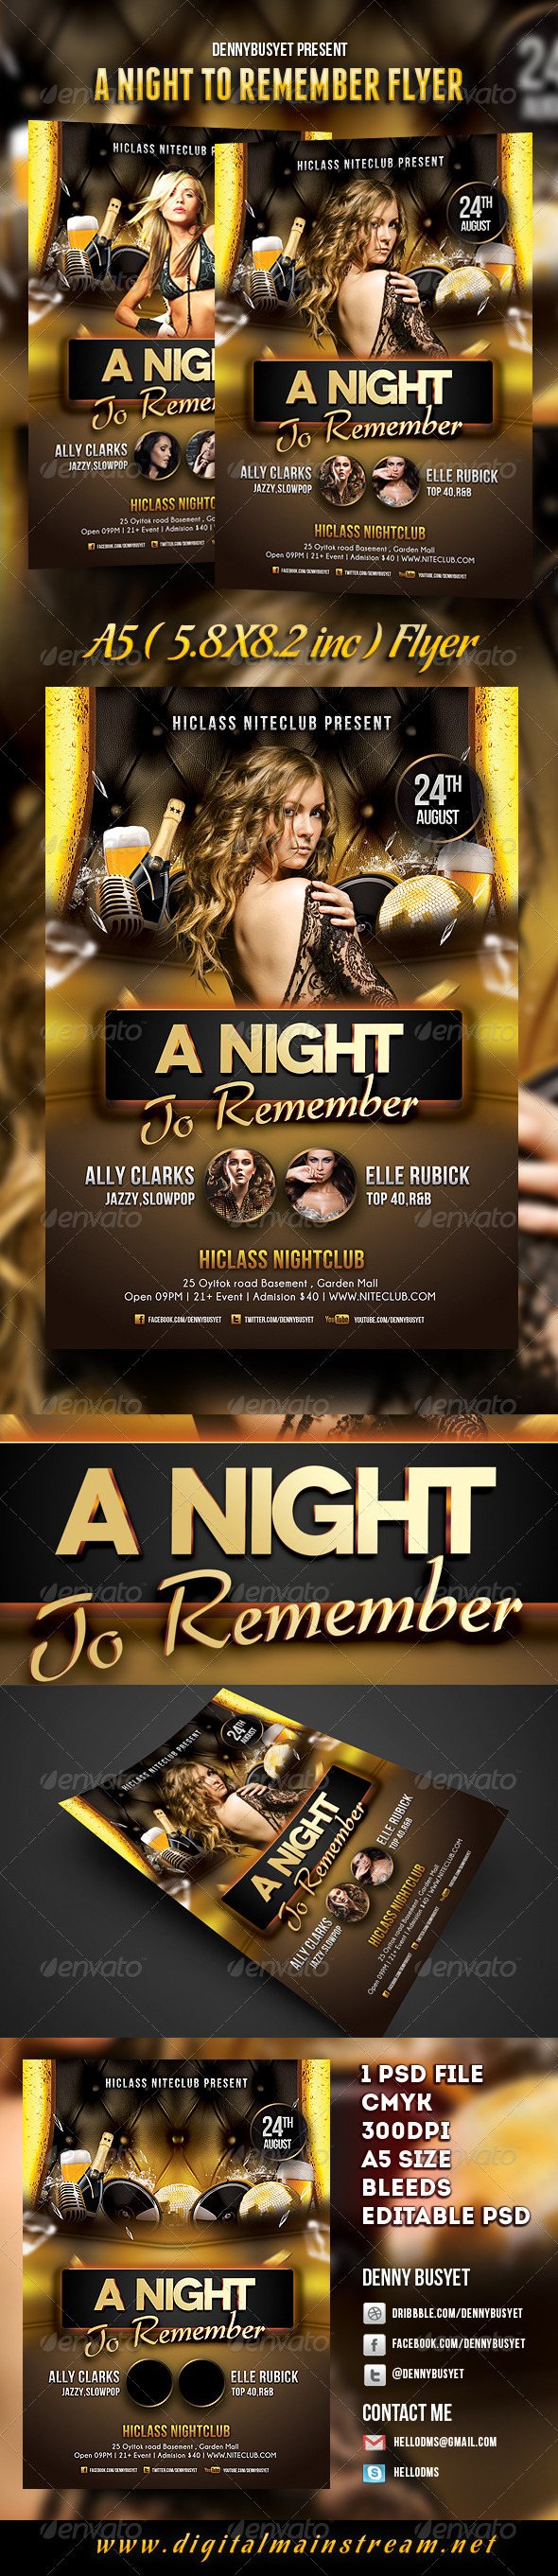 A Night To Remember Nightclub Flyer Template - Events Flyers